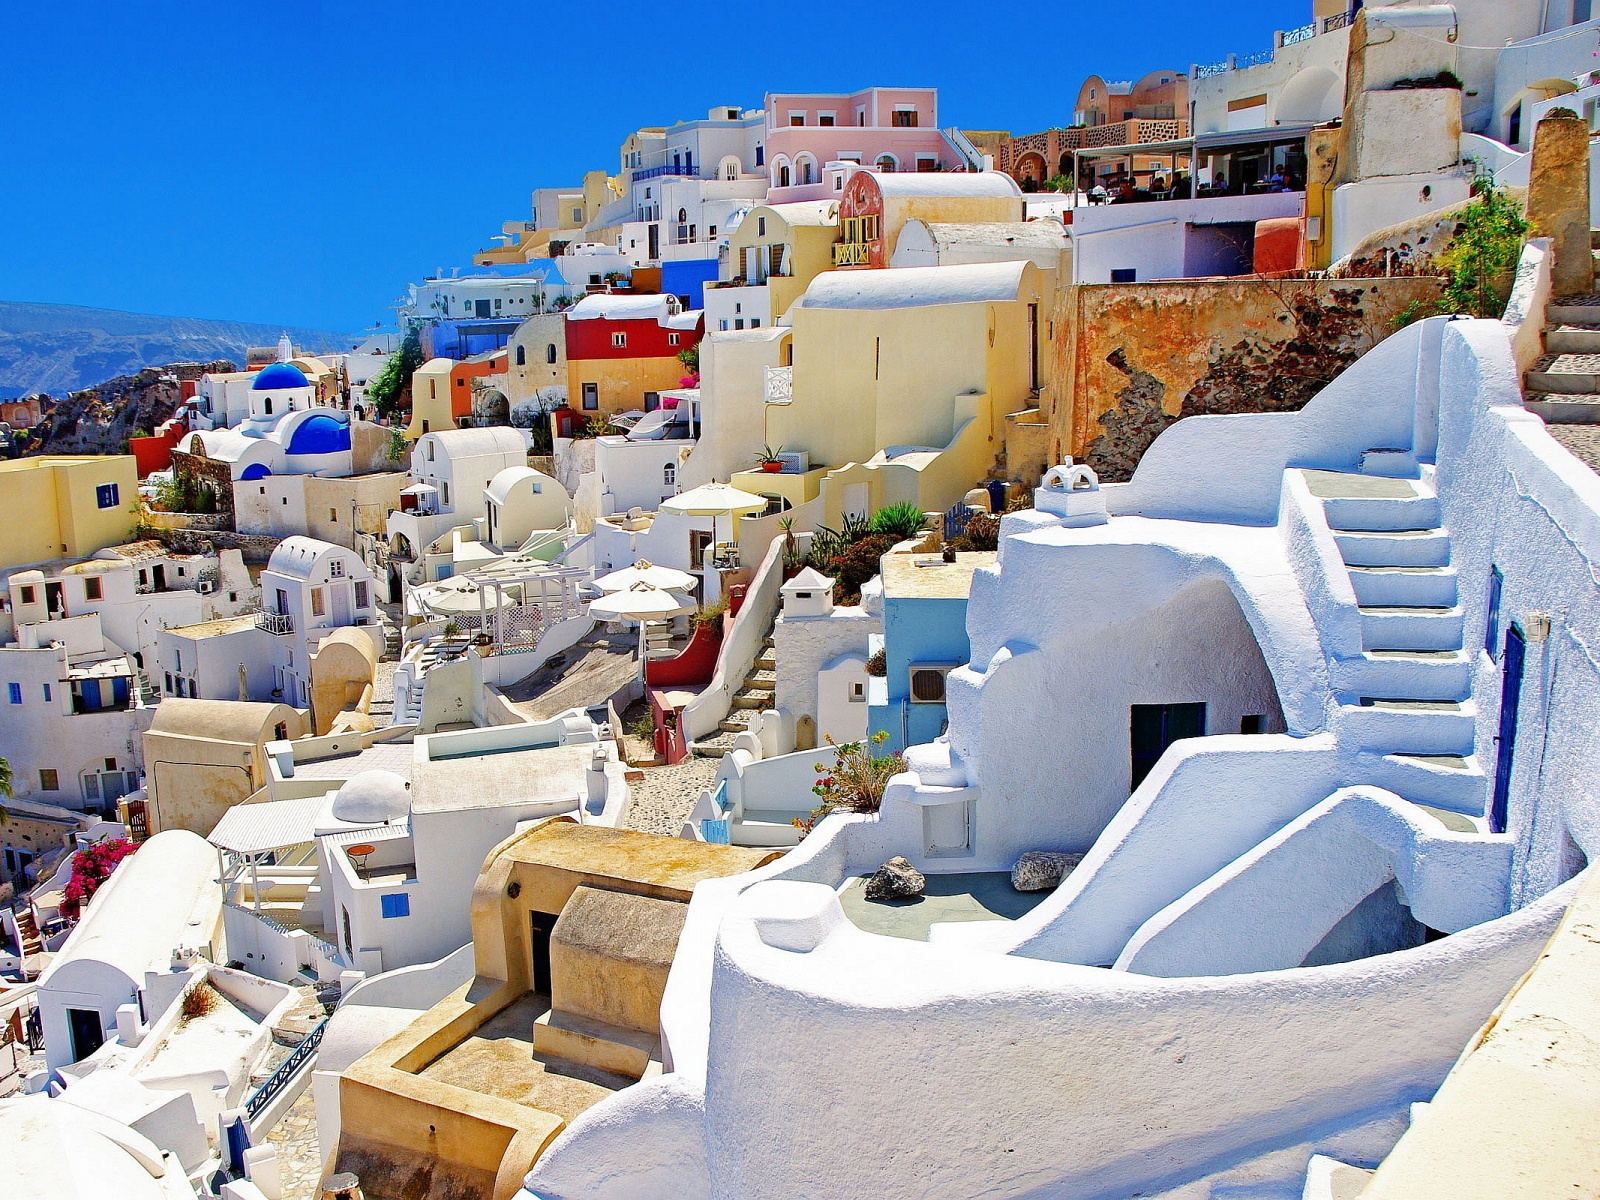 AD-Stunning-Photos-Of-Santorini-Greece-32